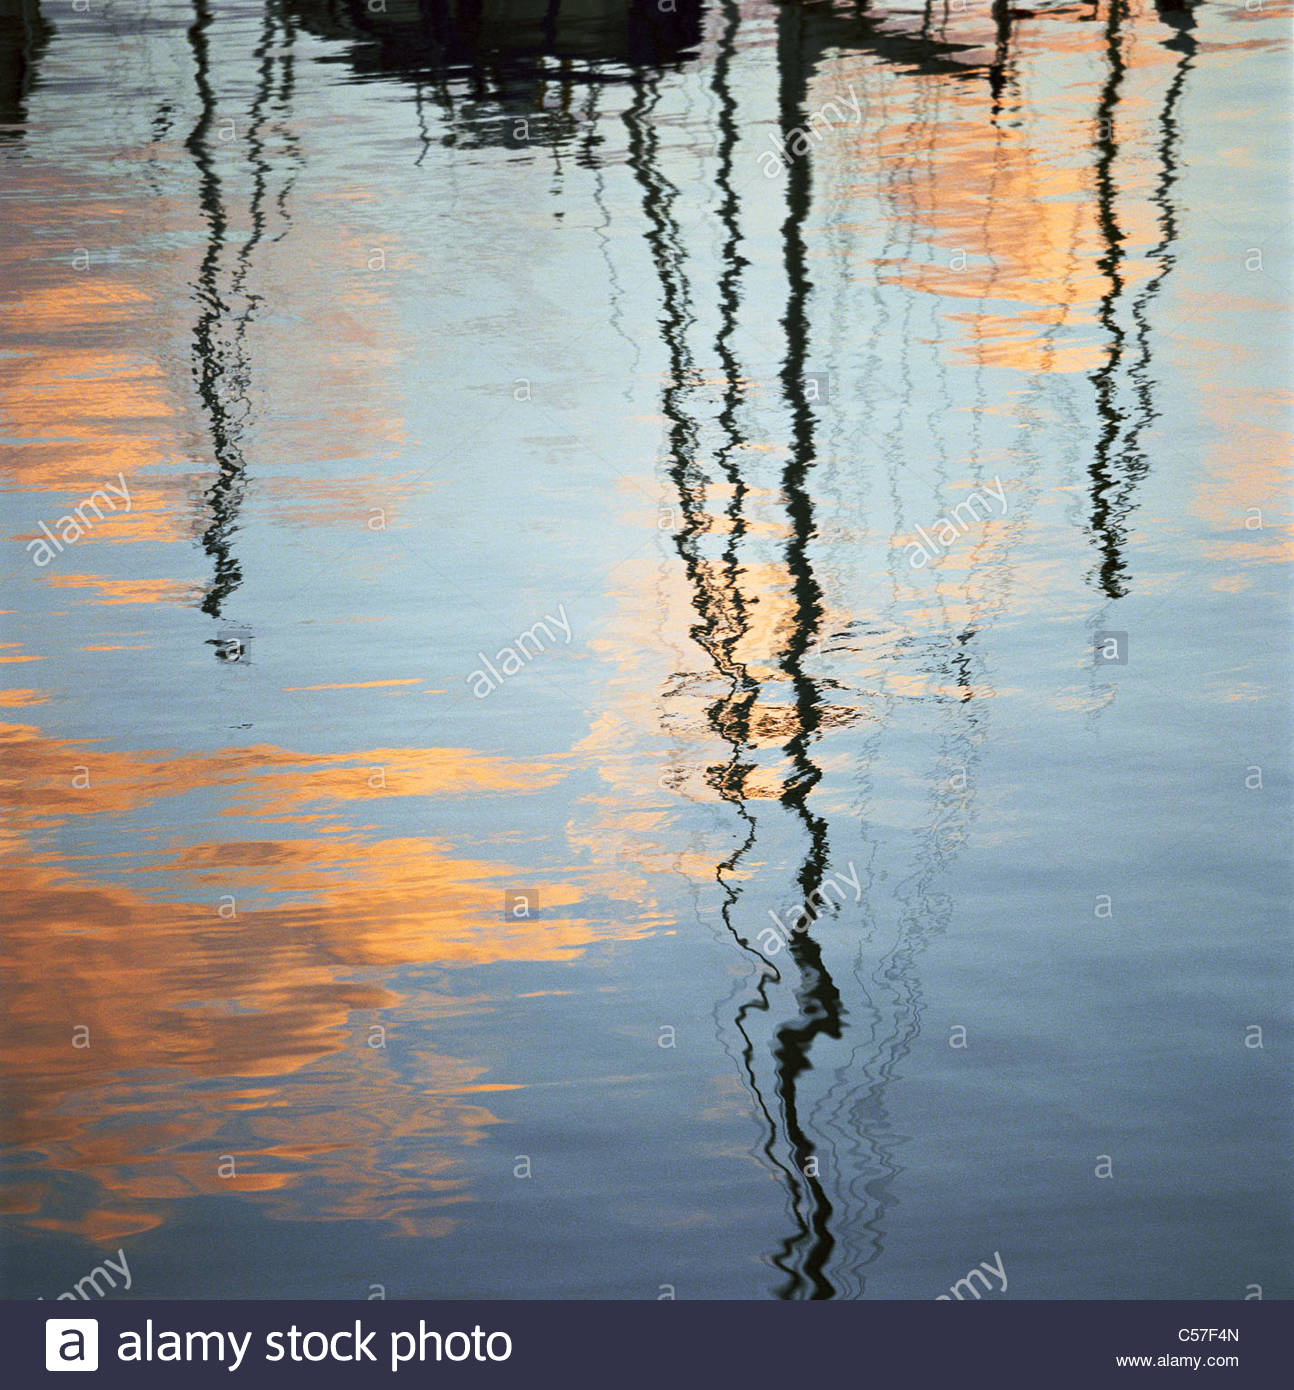 Sailboats reflected in water - Stock Image